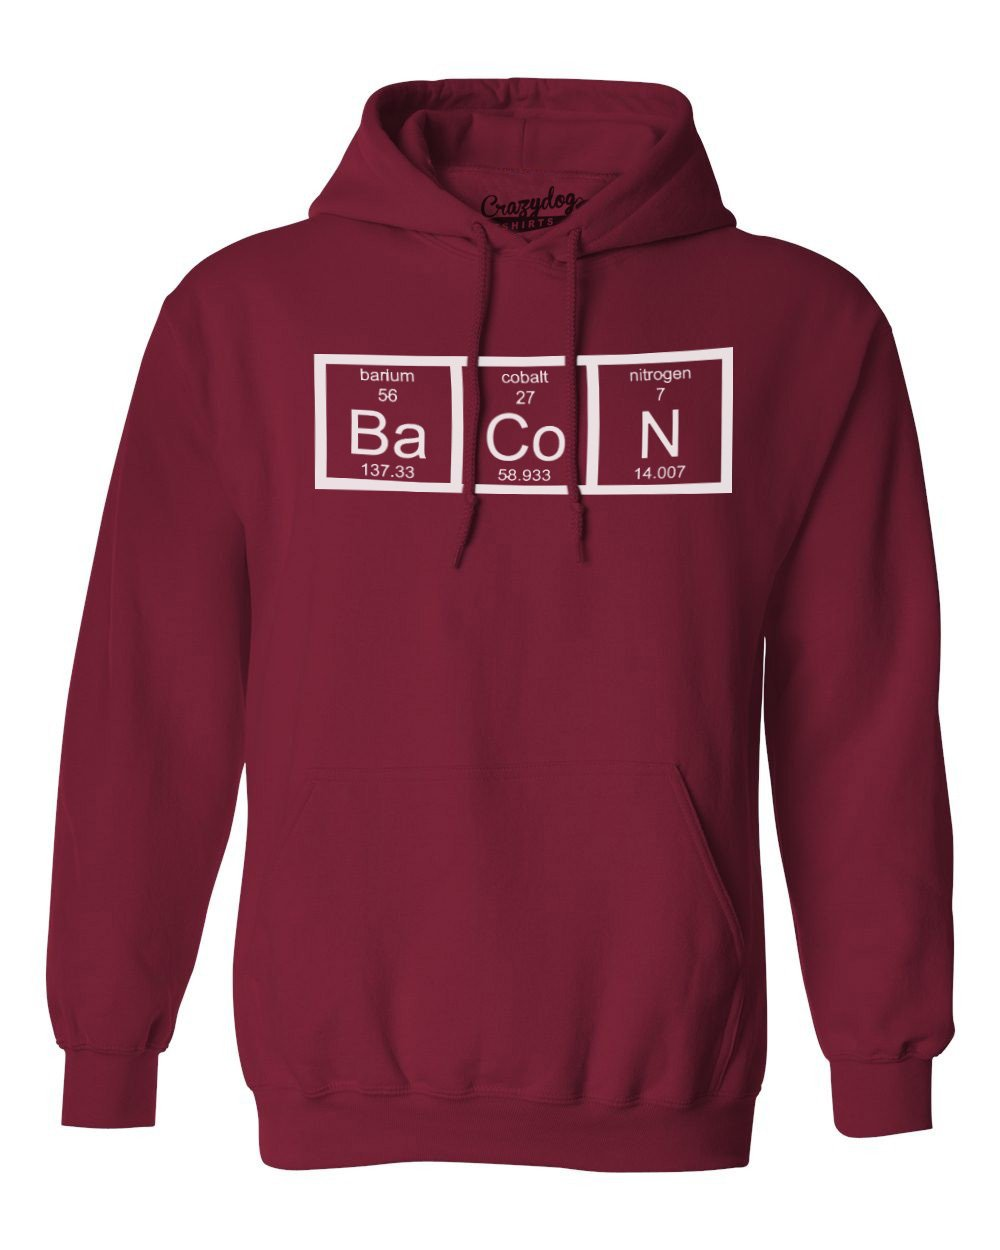 Chemistry of Bacon Hoodie Nerdy Element Science Breakfast Unisex Pull Over Crazy Dog Tshirts